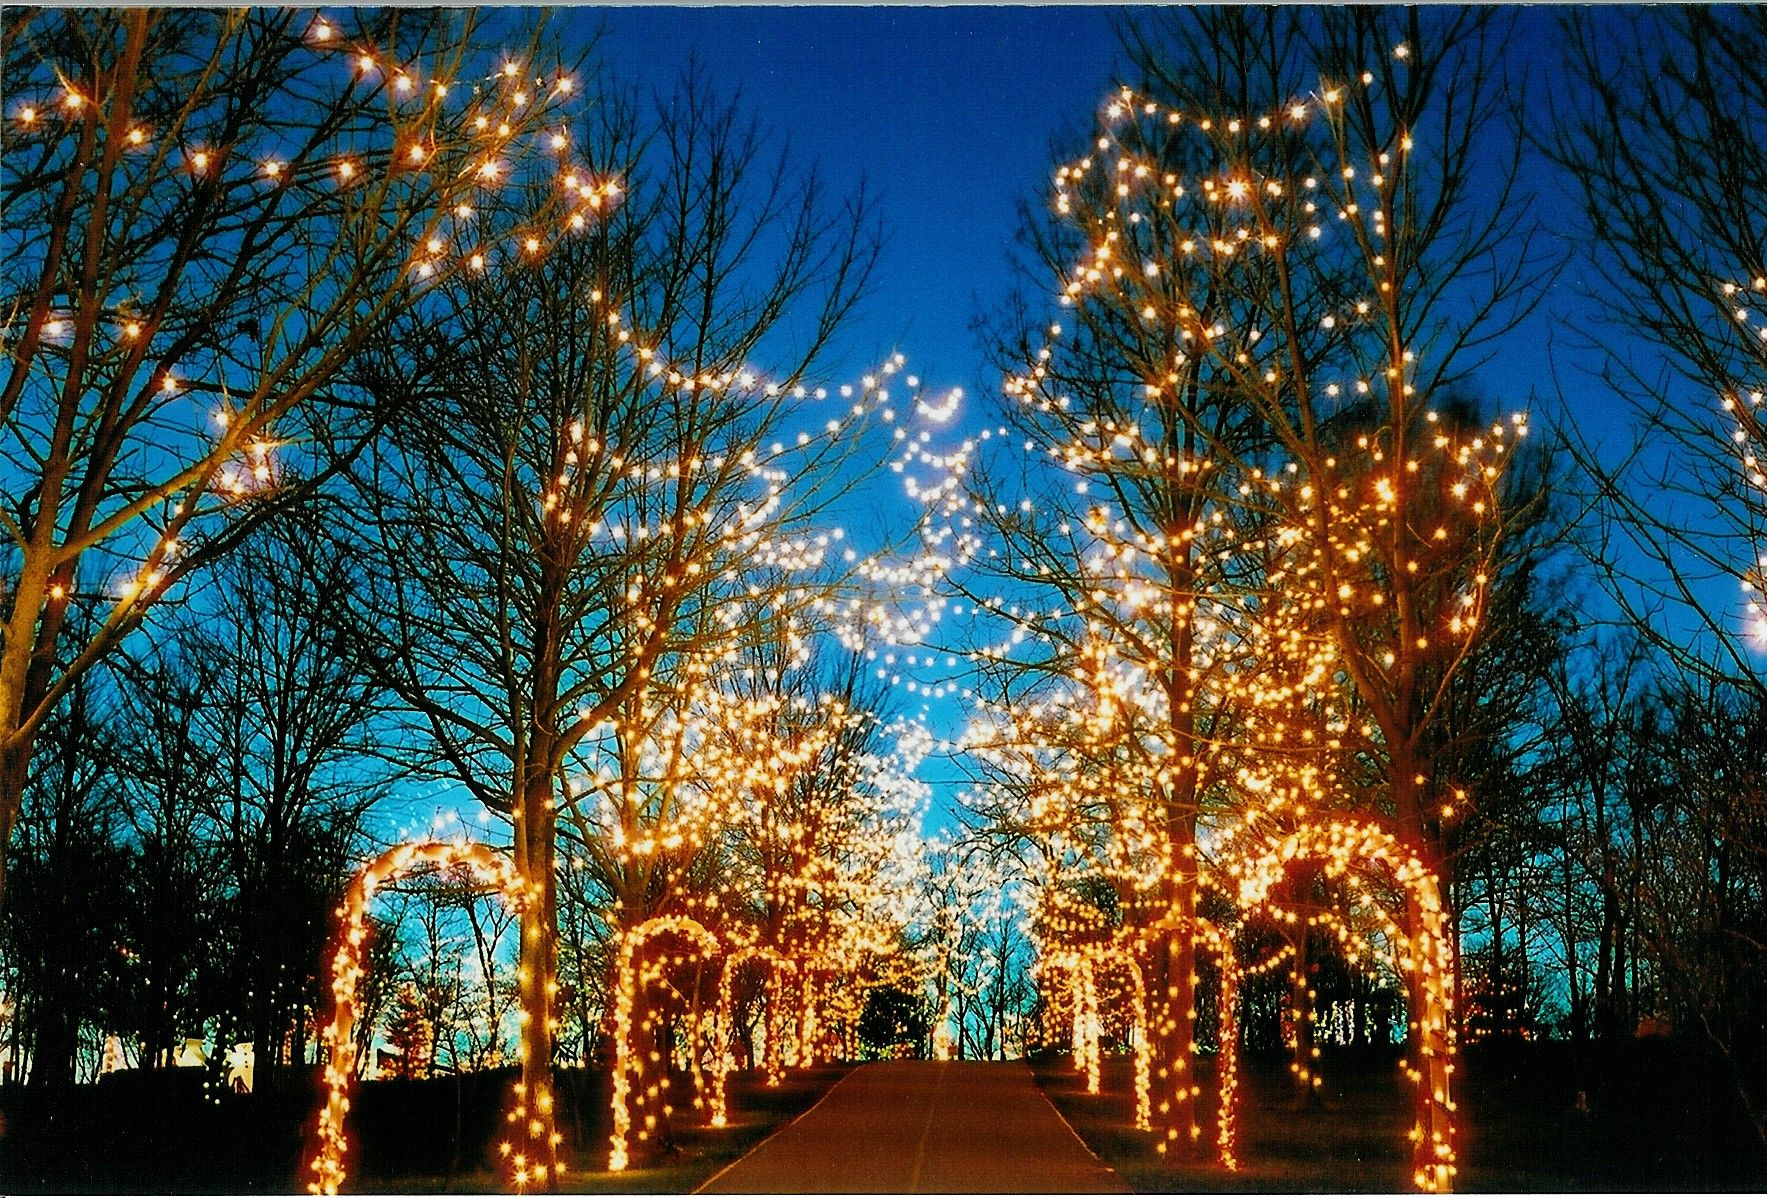 take your family to see the holiday lights on the hill at pyramid hill sculpture park wwwgettothebccom butler county ohio